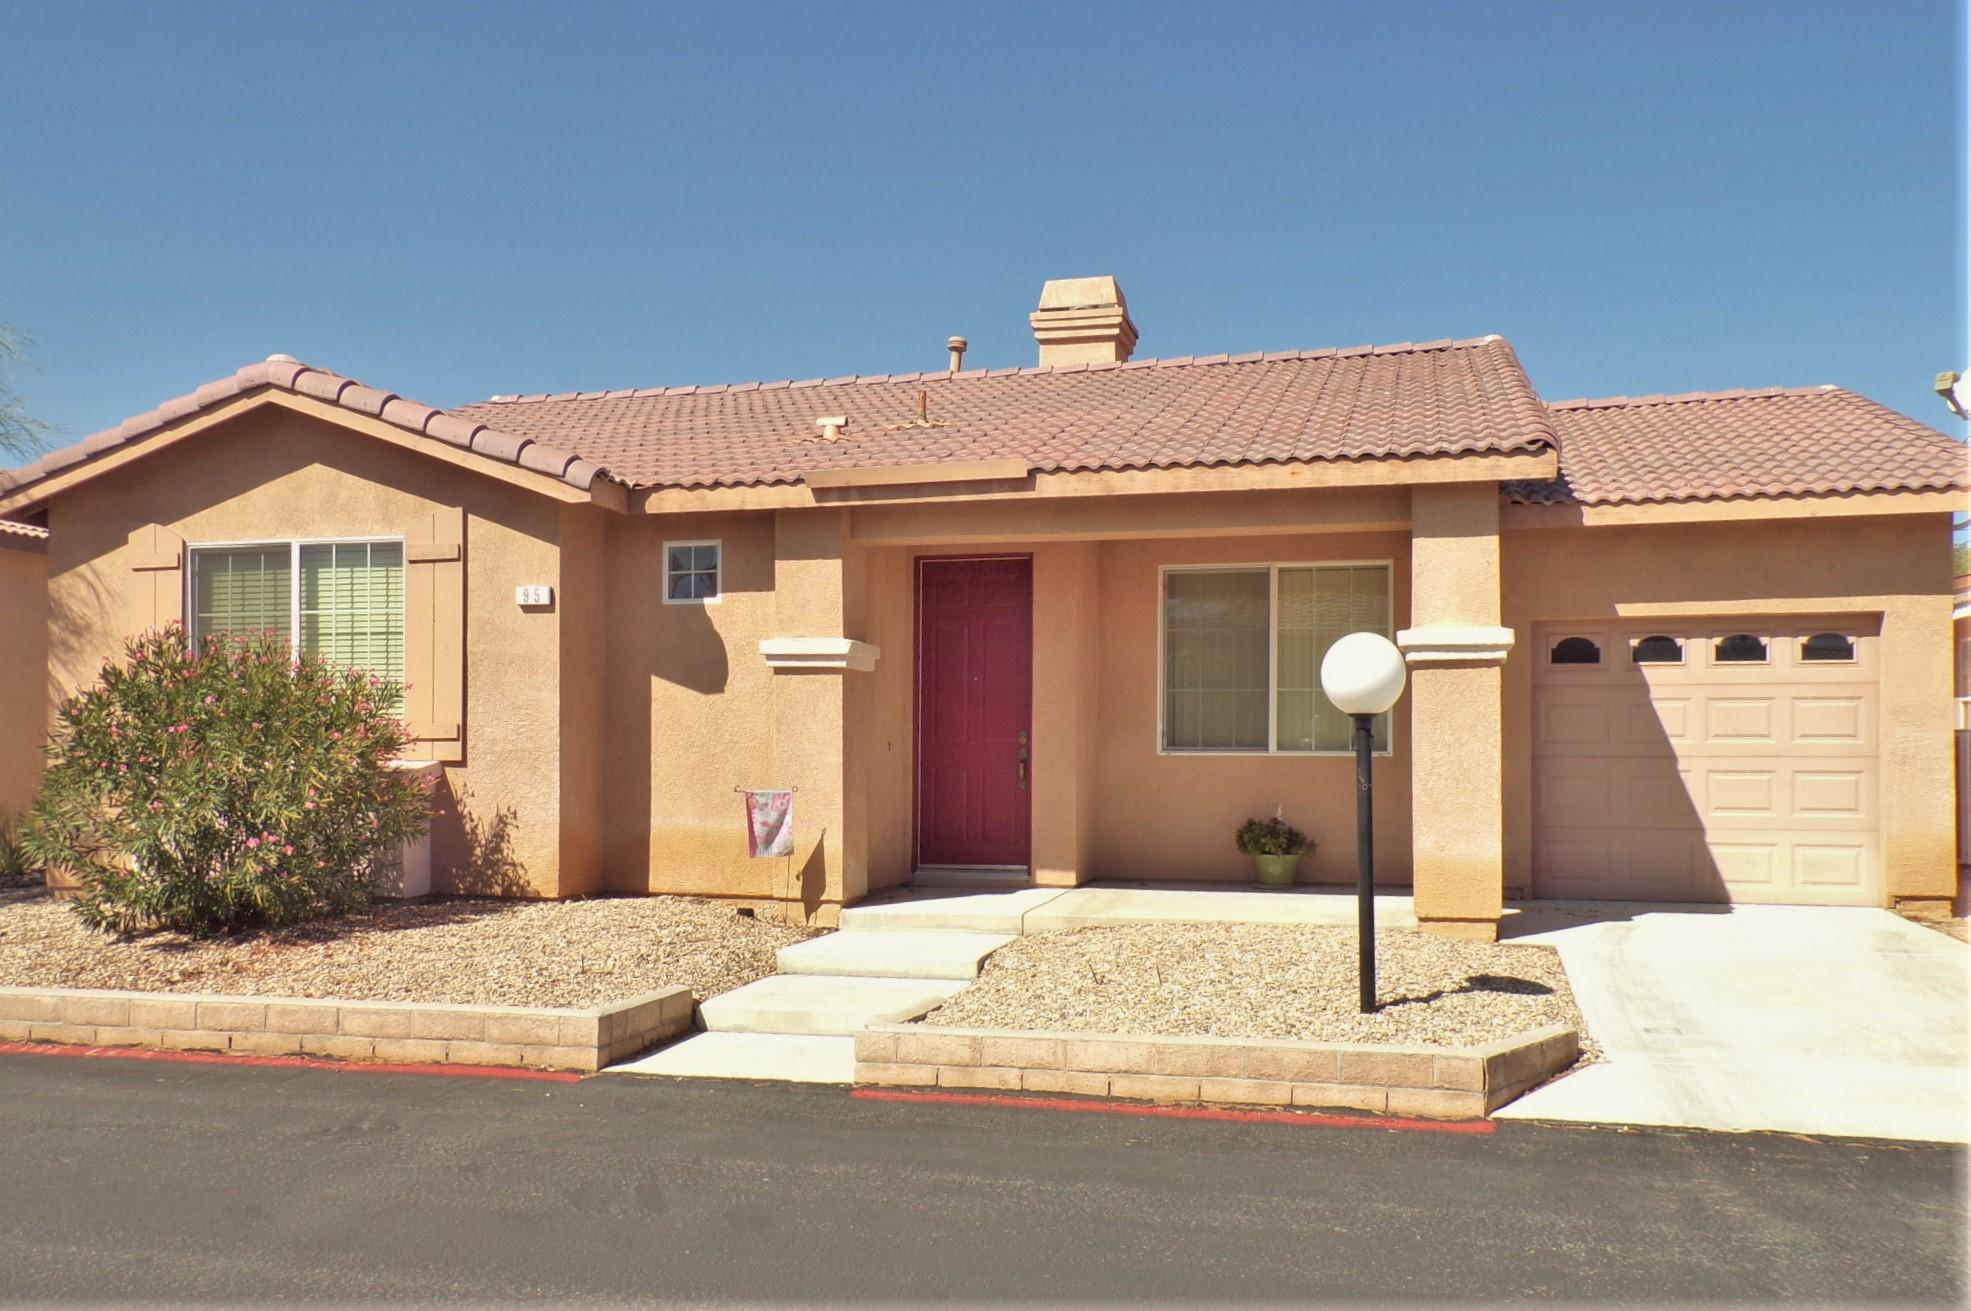 Photo of 65565 Acoma Avenue #95, Desert Hot Springs, CA 92240